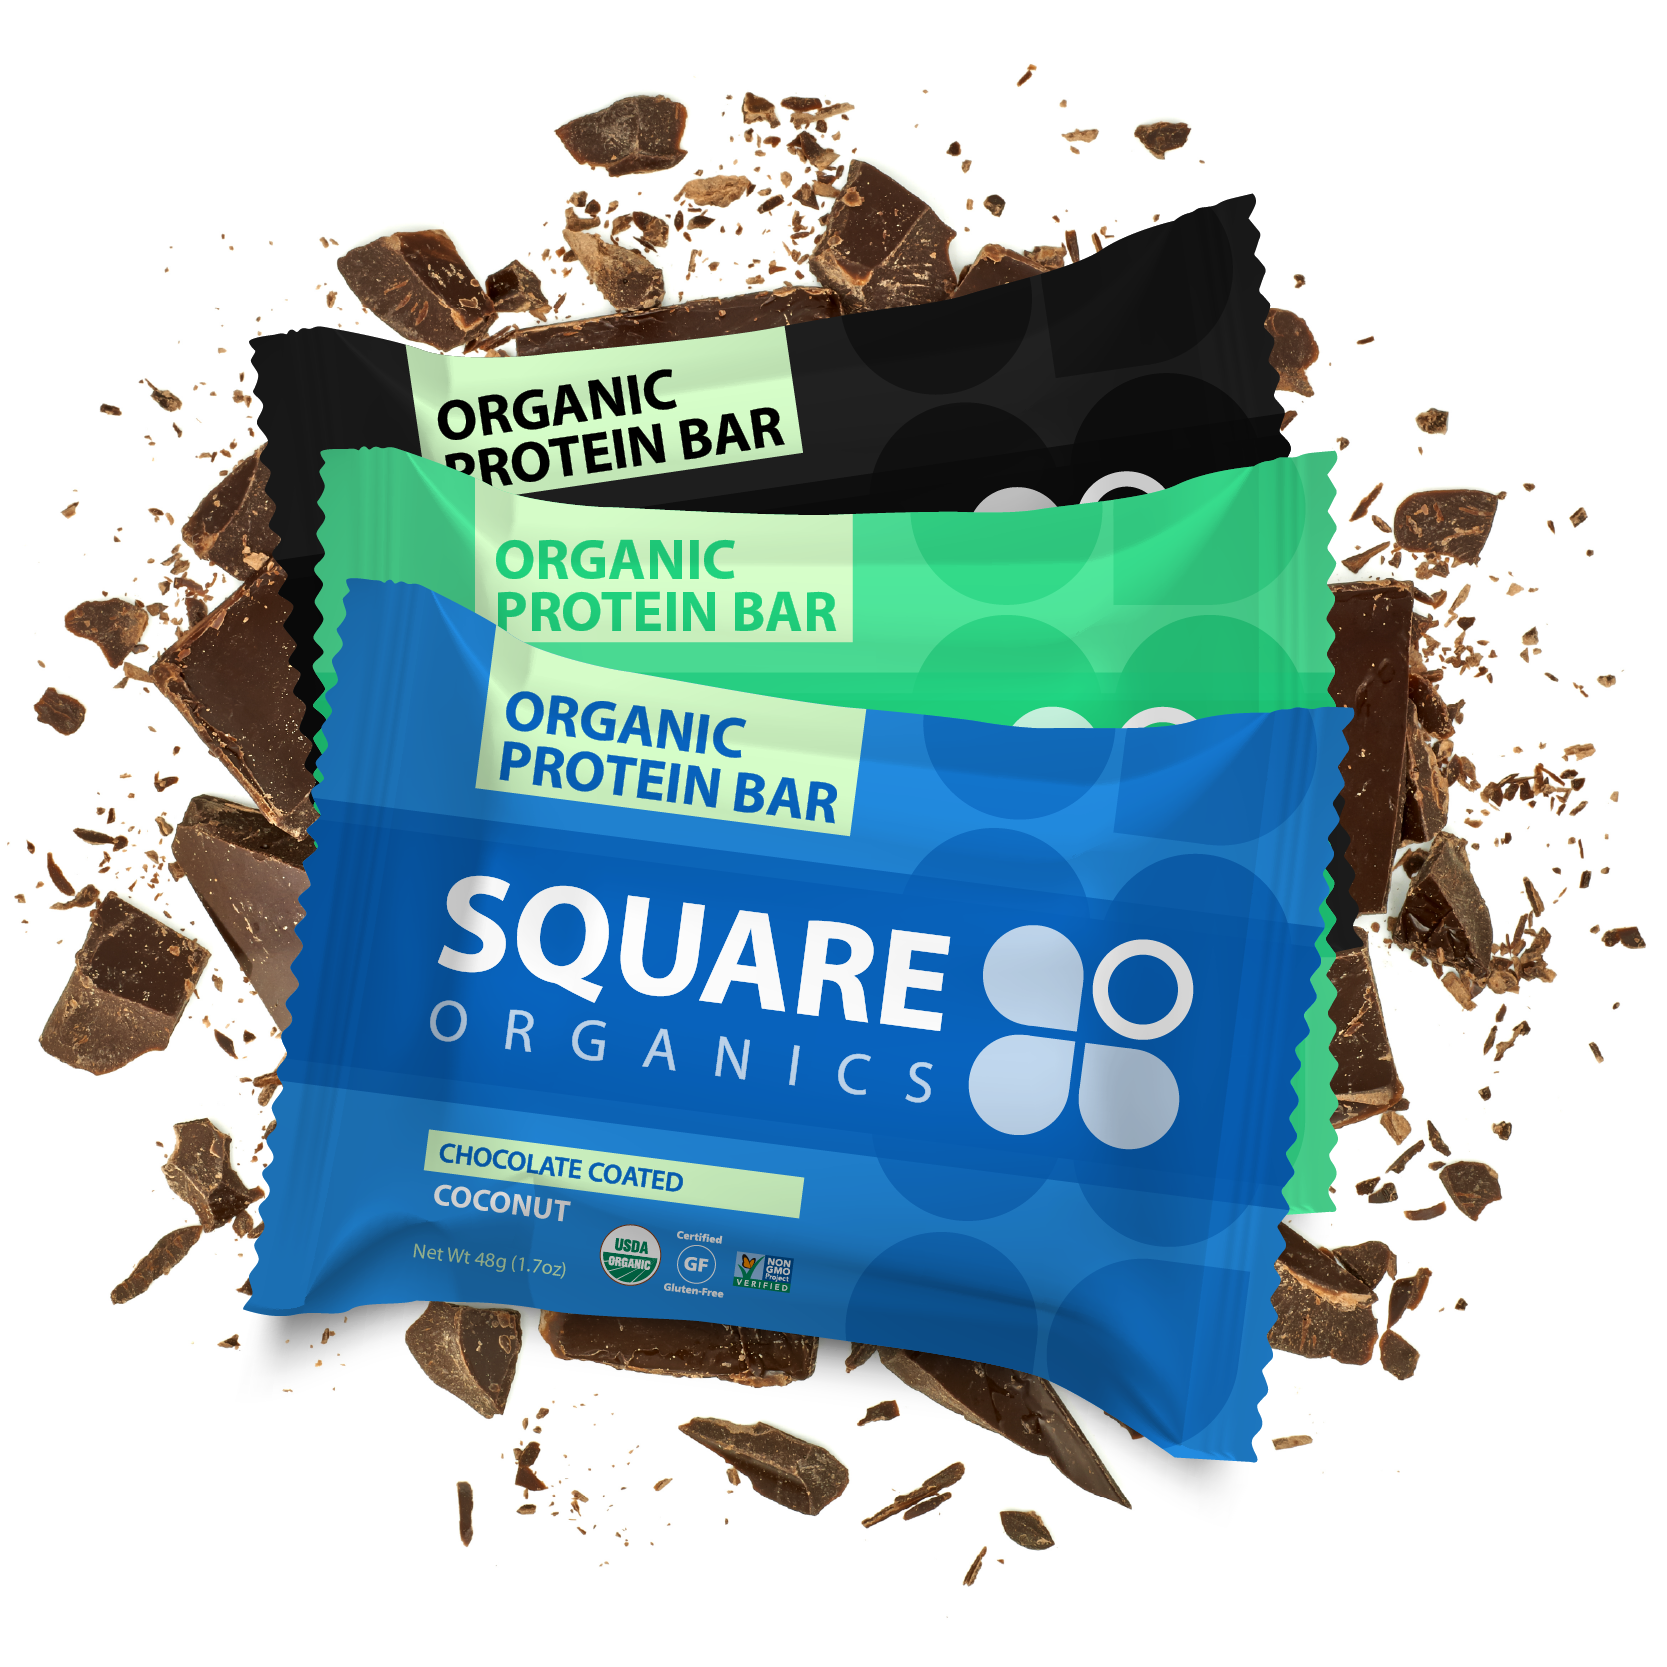 Best Sellers Chocolate Coated Combo - Square Organics